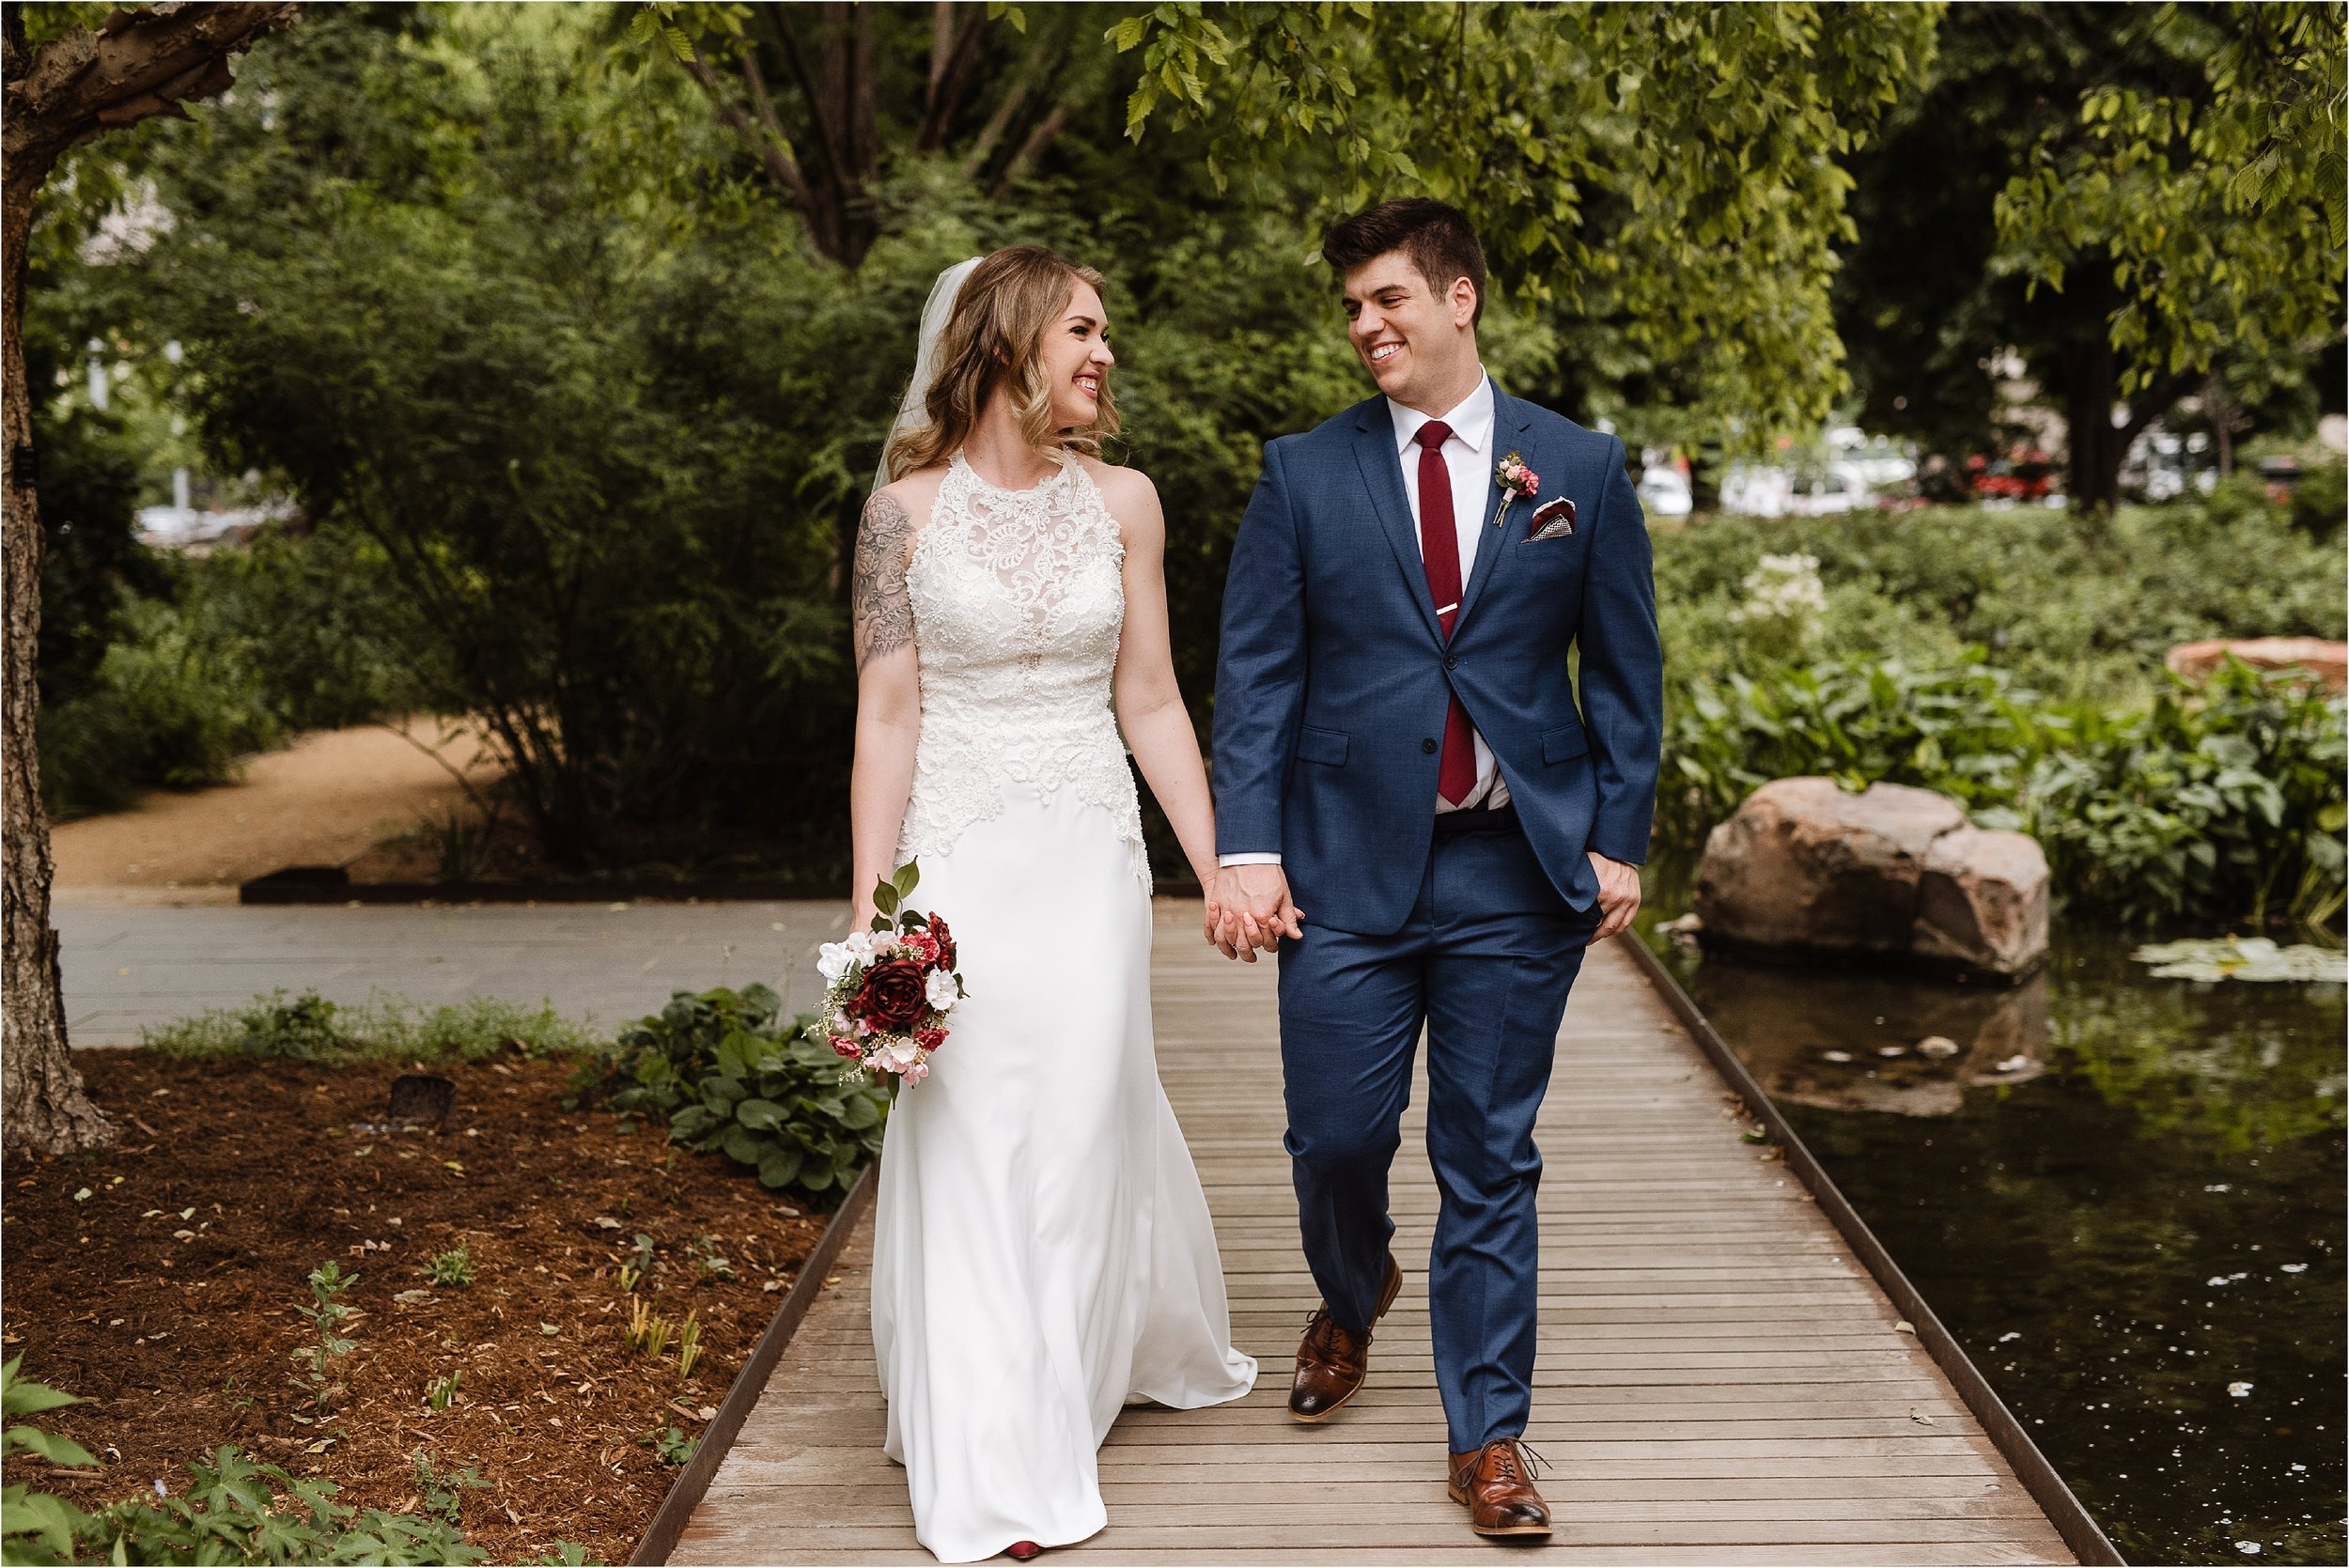 Romantic Garden Wedding in Oklahoma City at Myriad Gardens